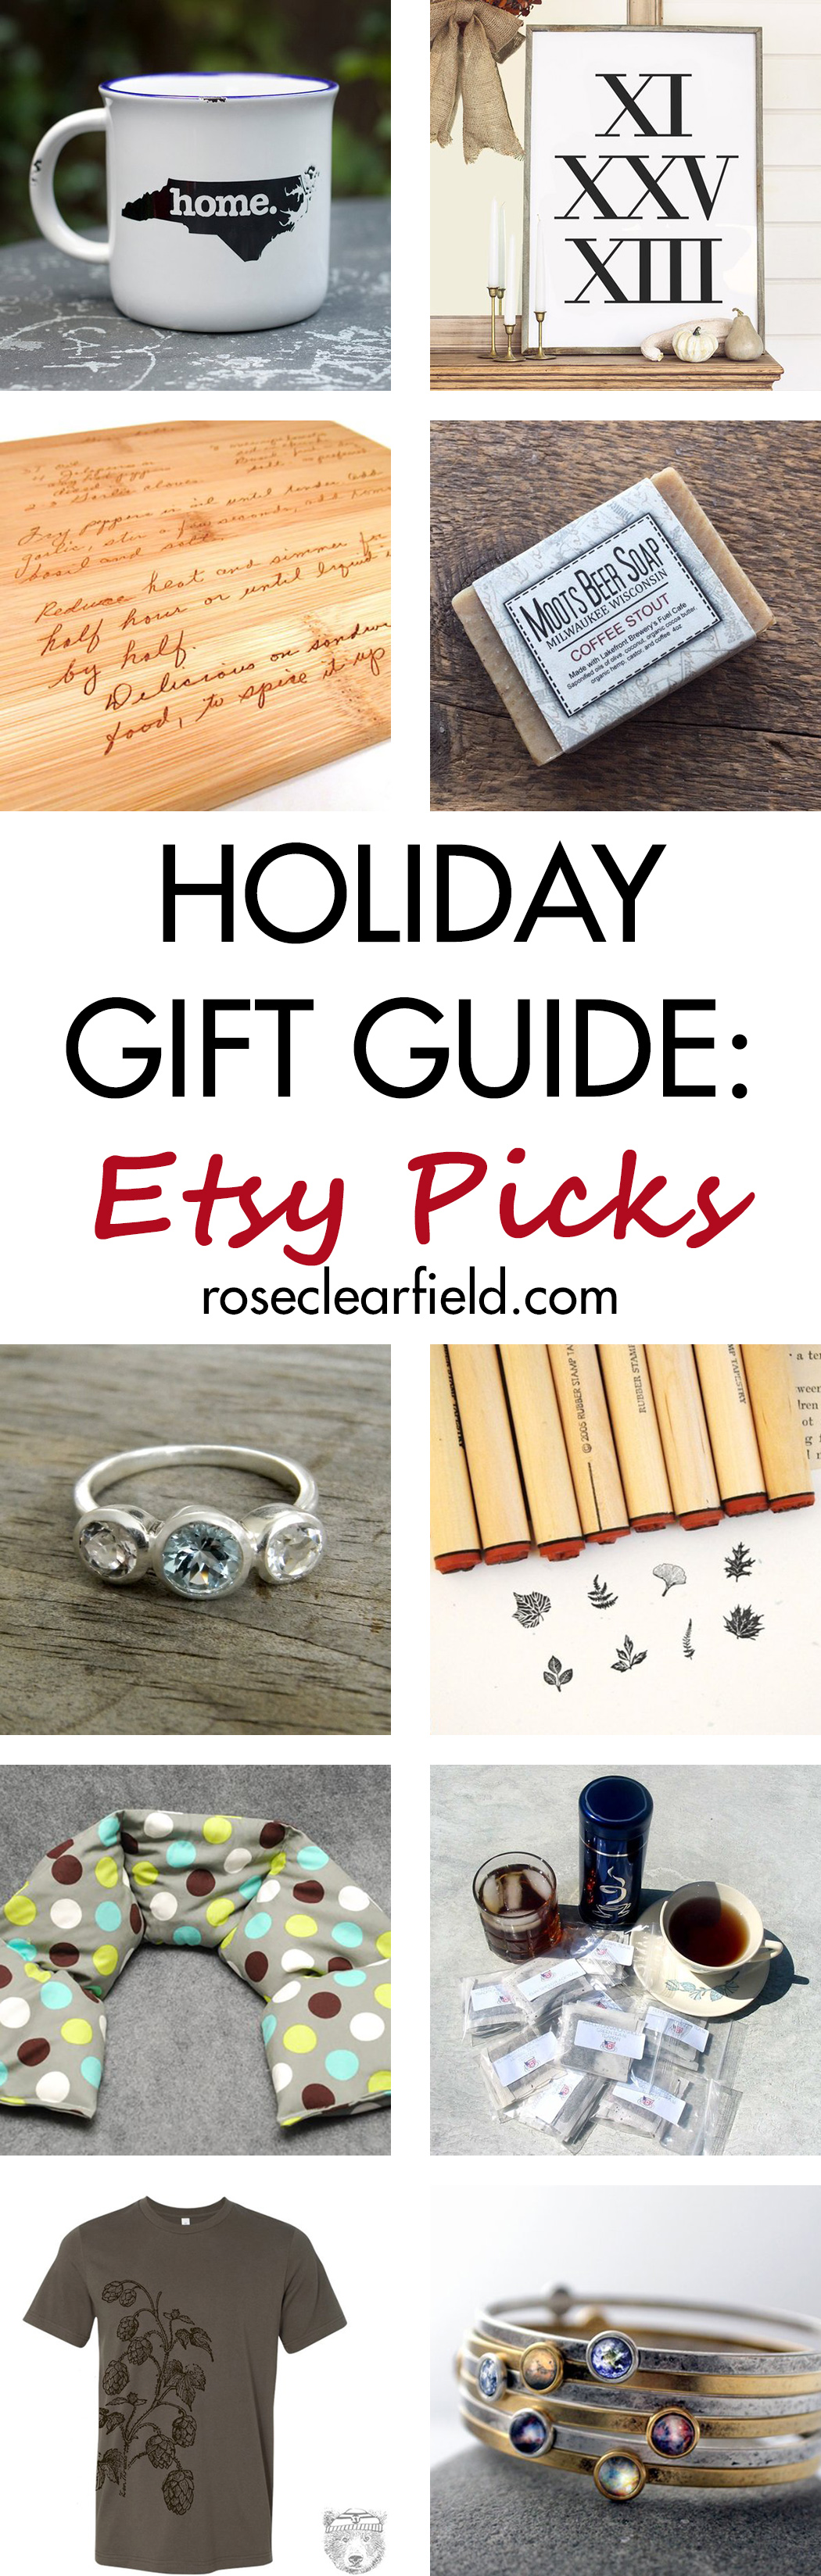 Holiday Gift Guide: Etsy Picks | https://www.roseclearfield.com